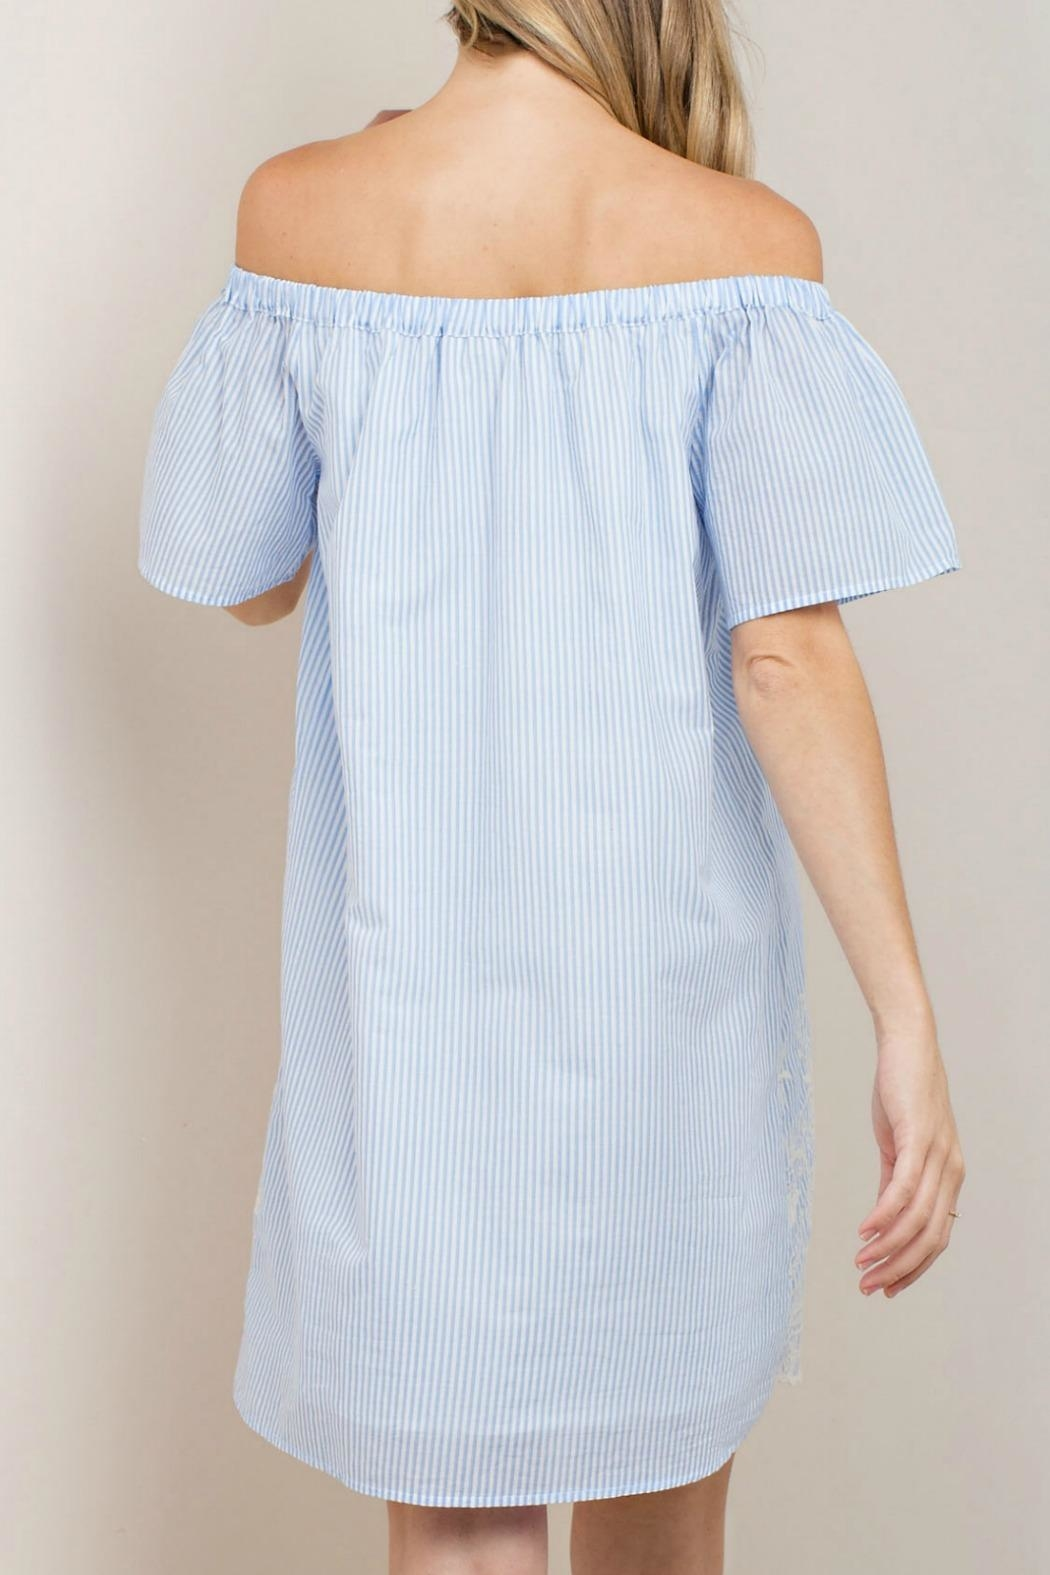 KORI AMERICA Off-Shoulder Stripe Dress - Front Full Image